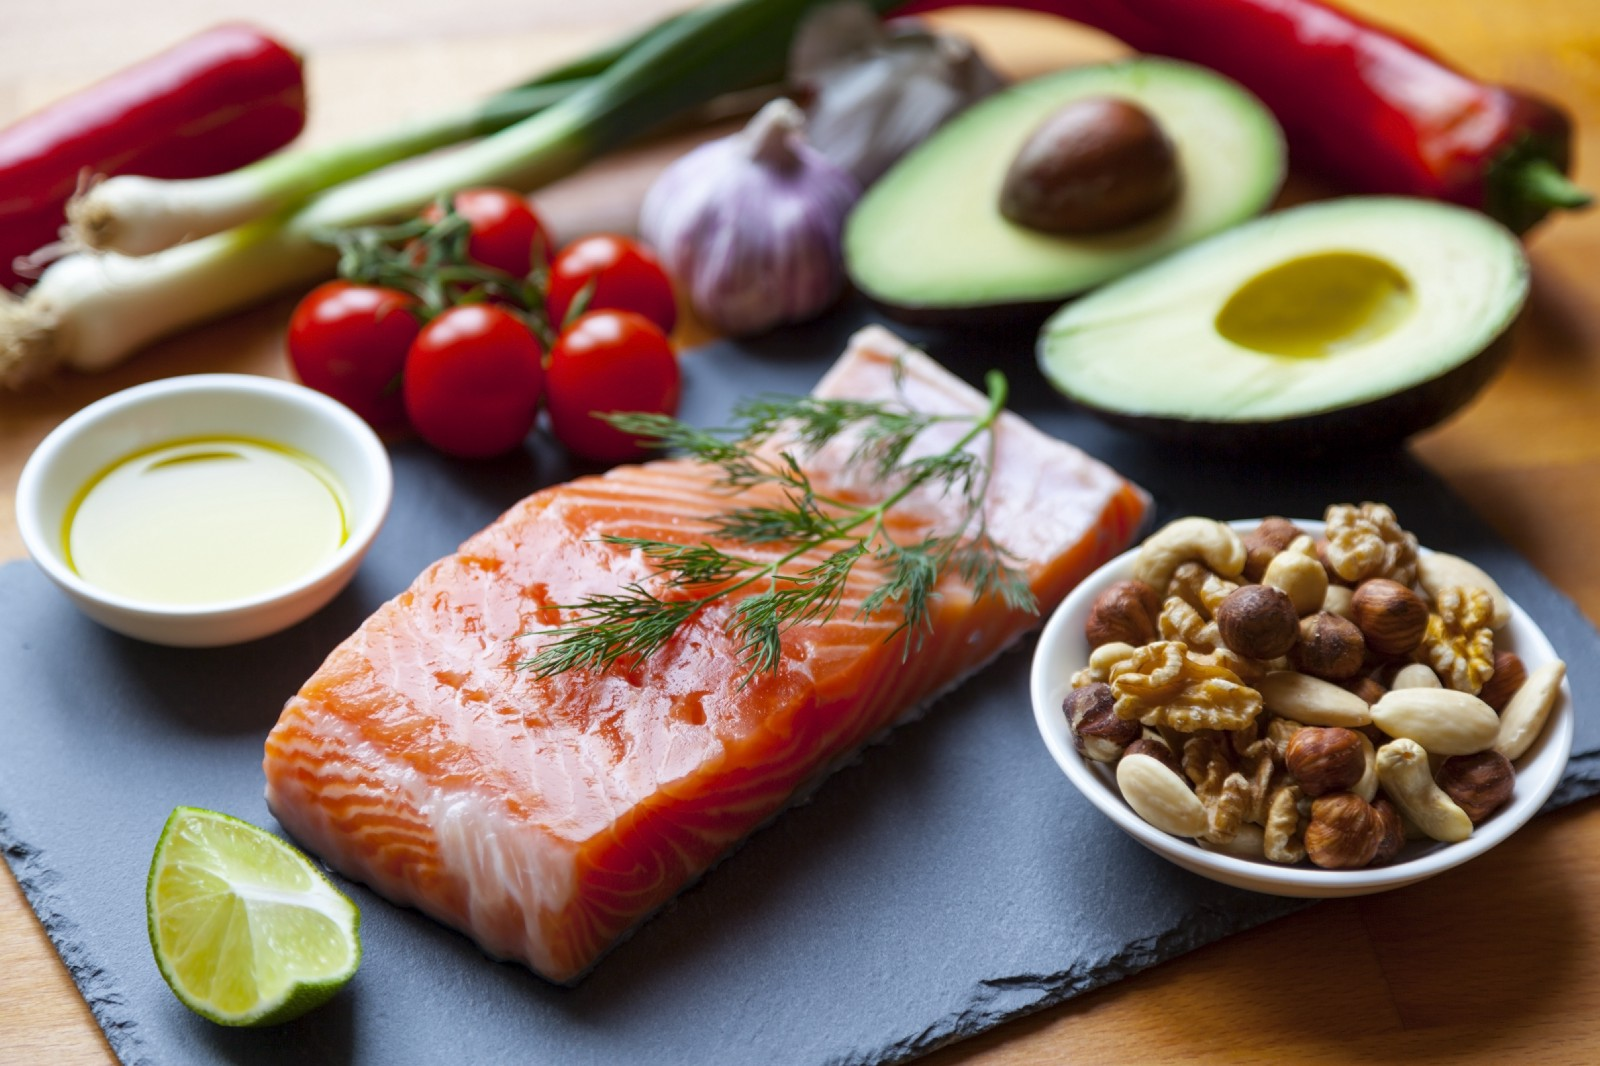 Science Might Have Identified the Optimal Human Diet